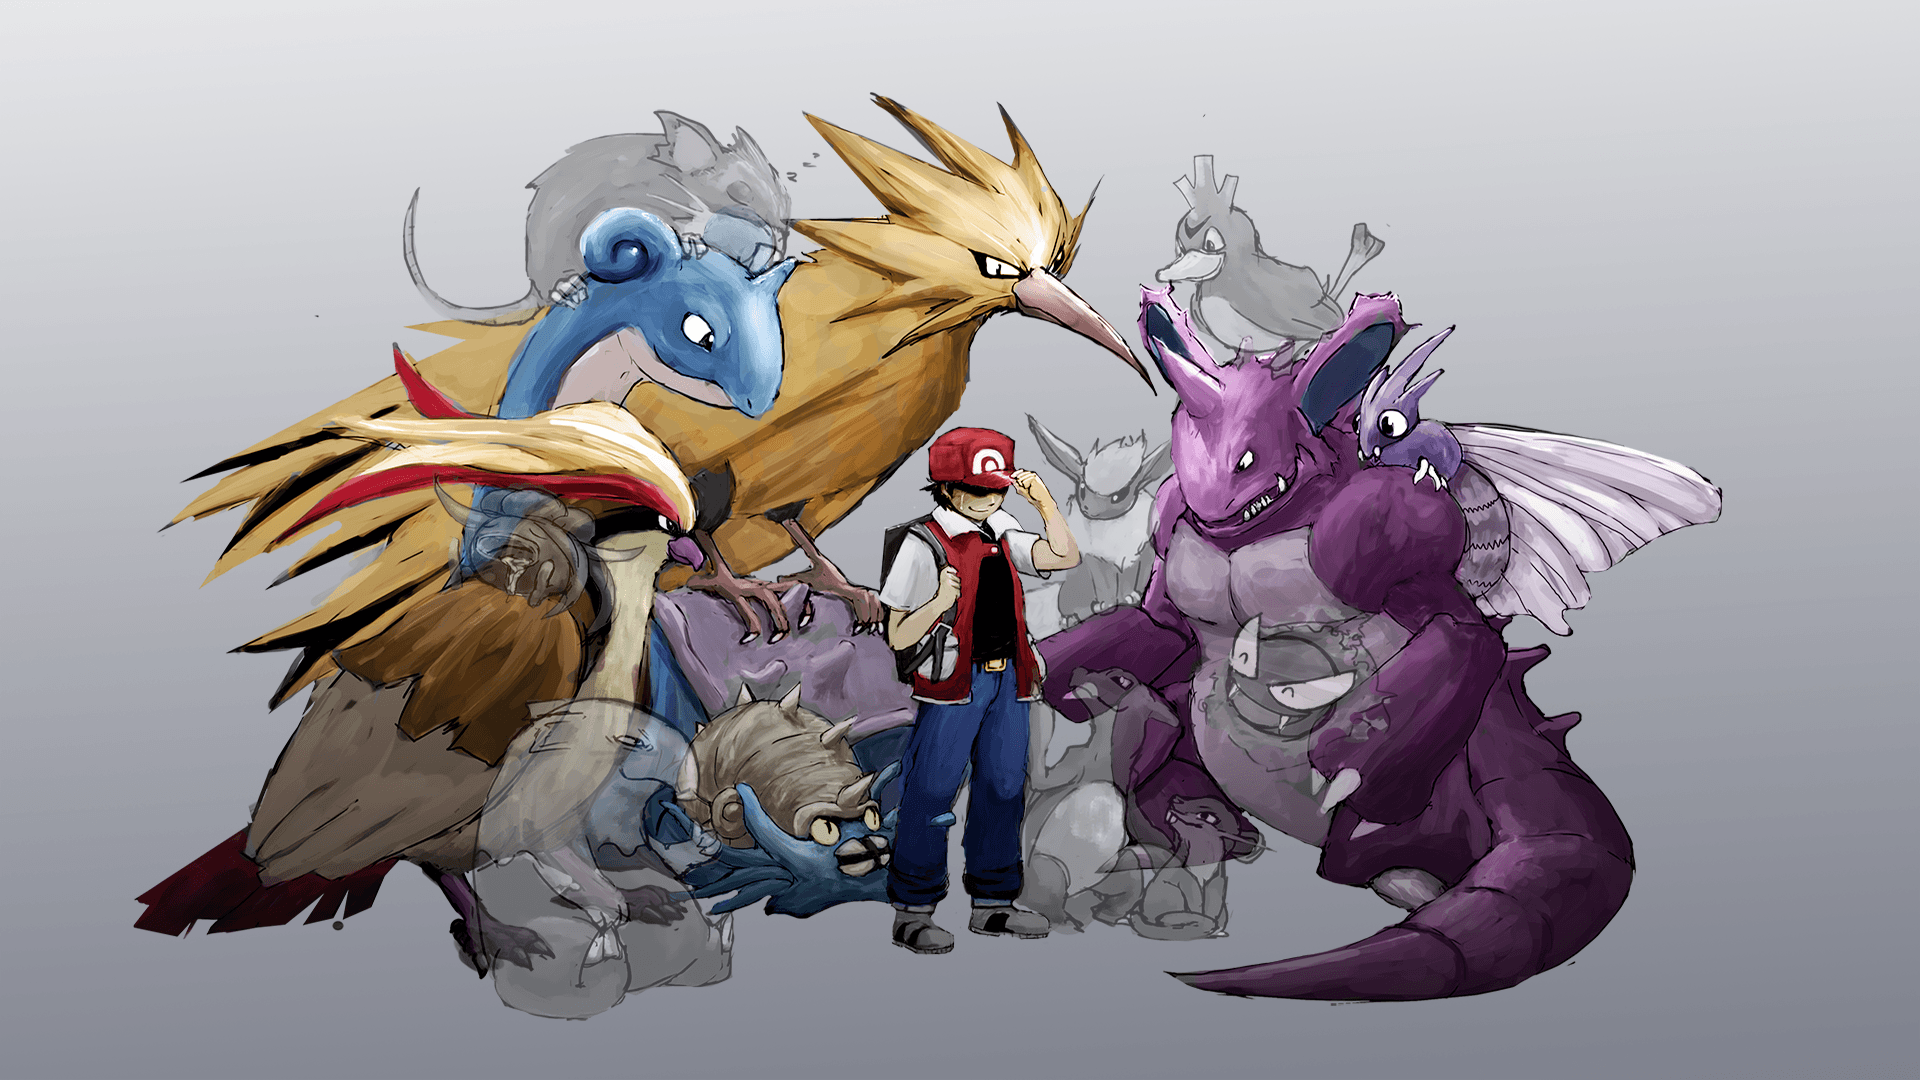 Twitch Plays Pokemon Wallpapers - Album on Imgur